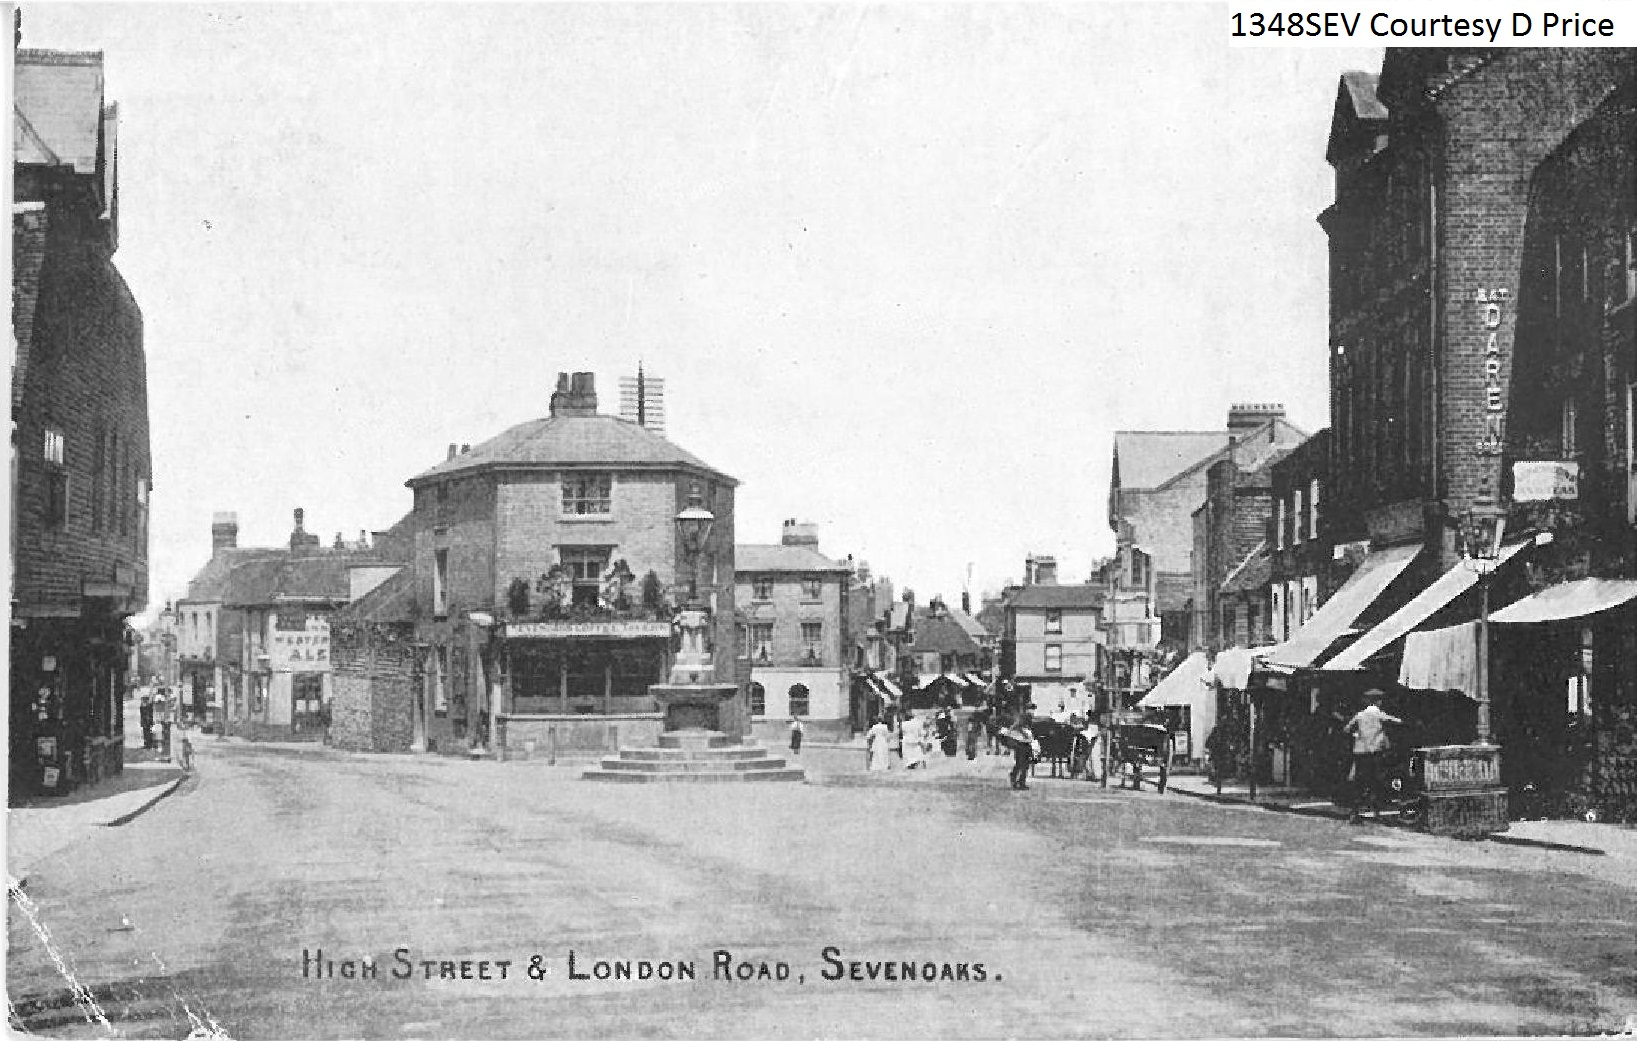 High Street & London Road, Sevenoaks